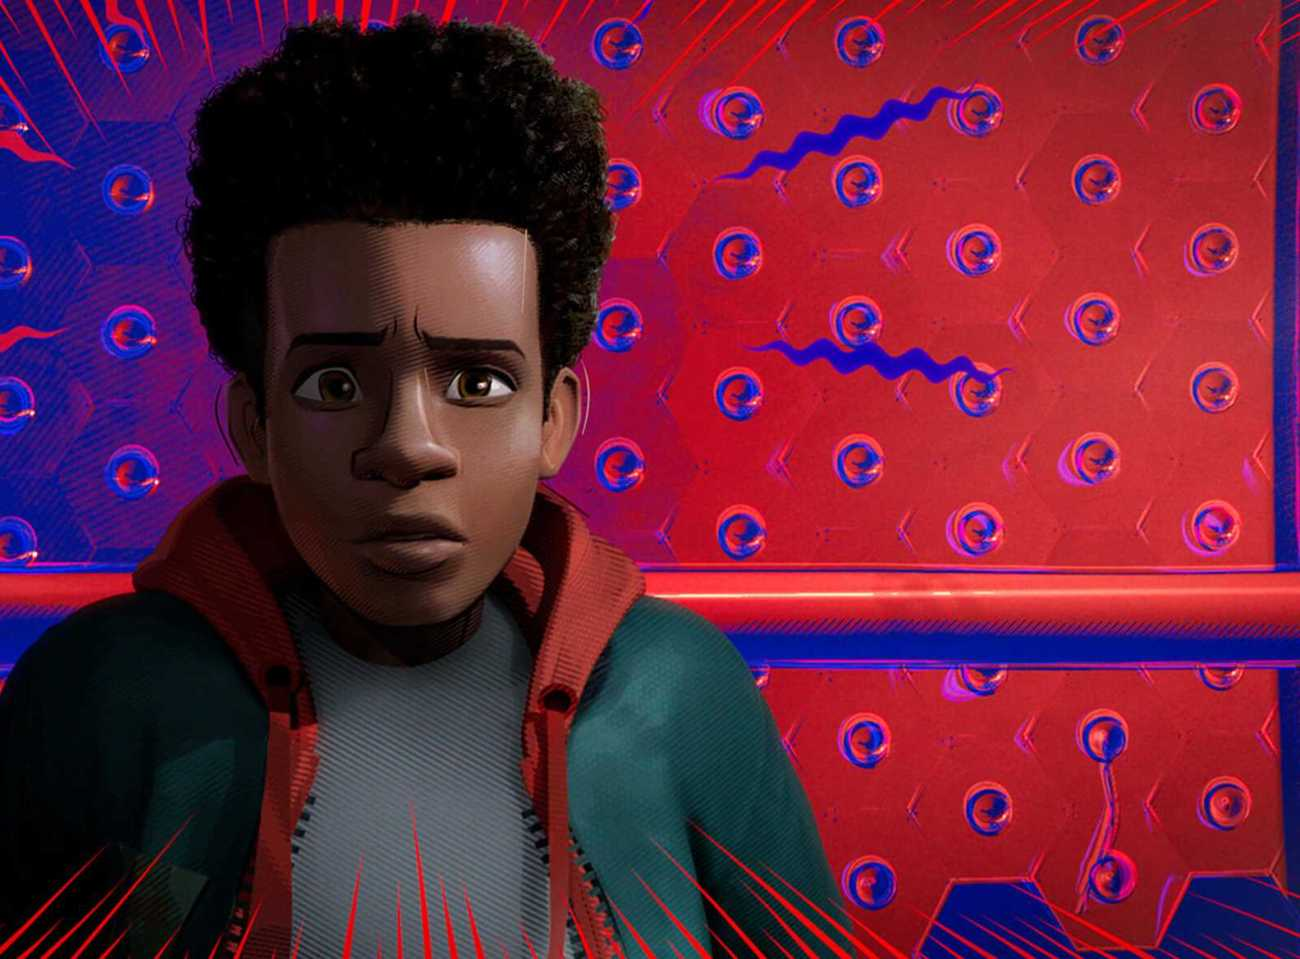 spiderman spideverse image cliff and co.jpg